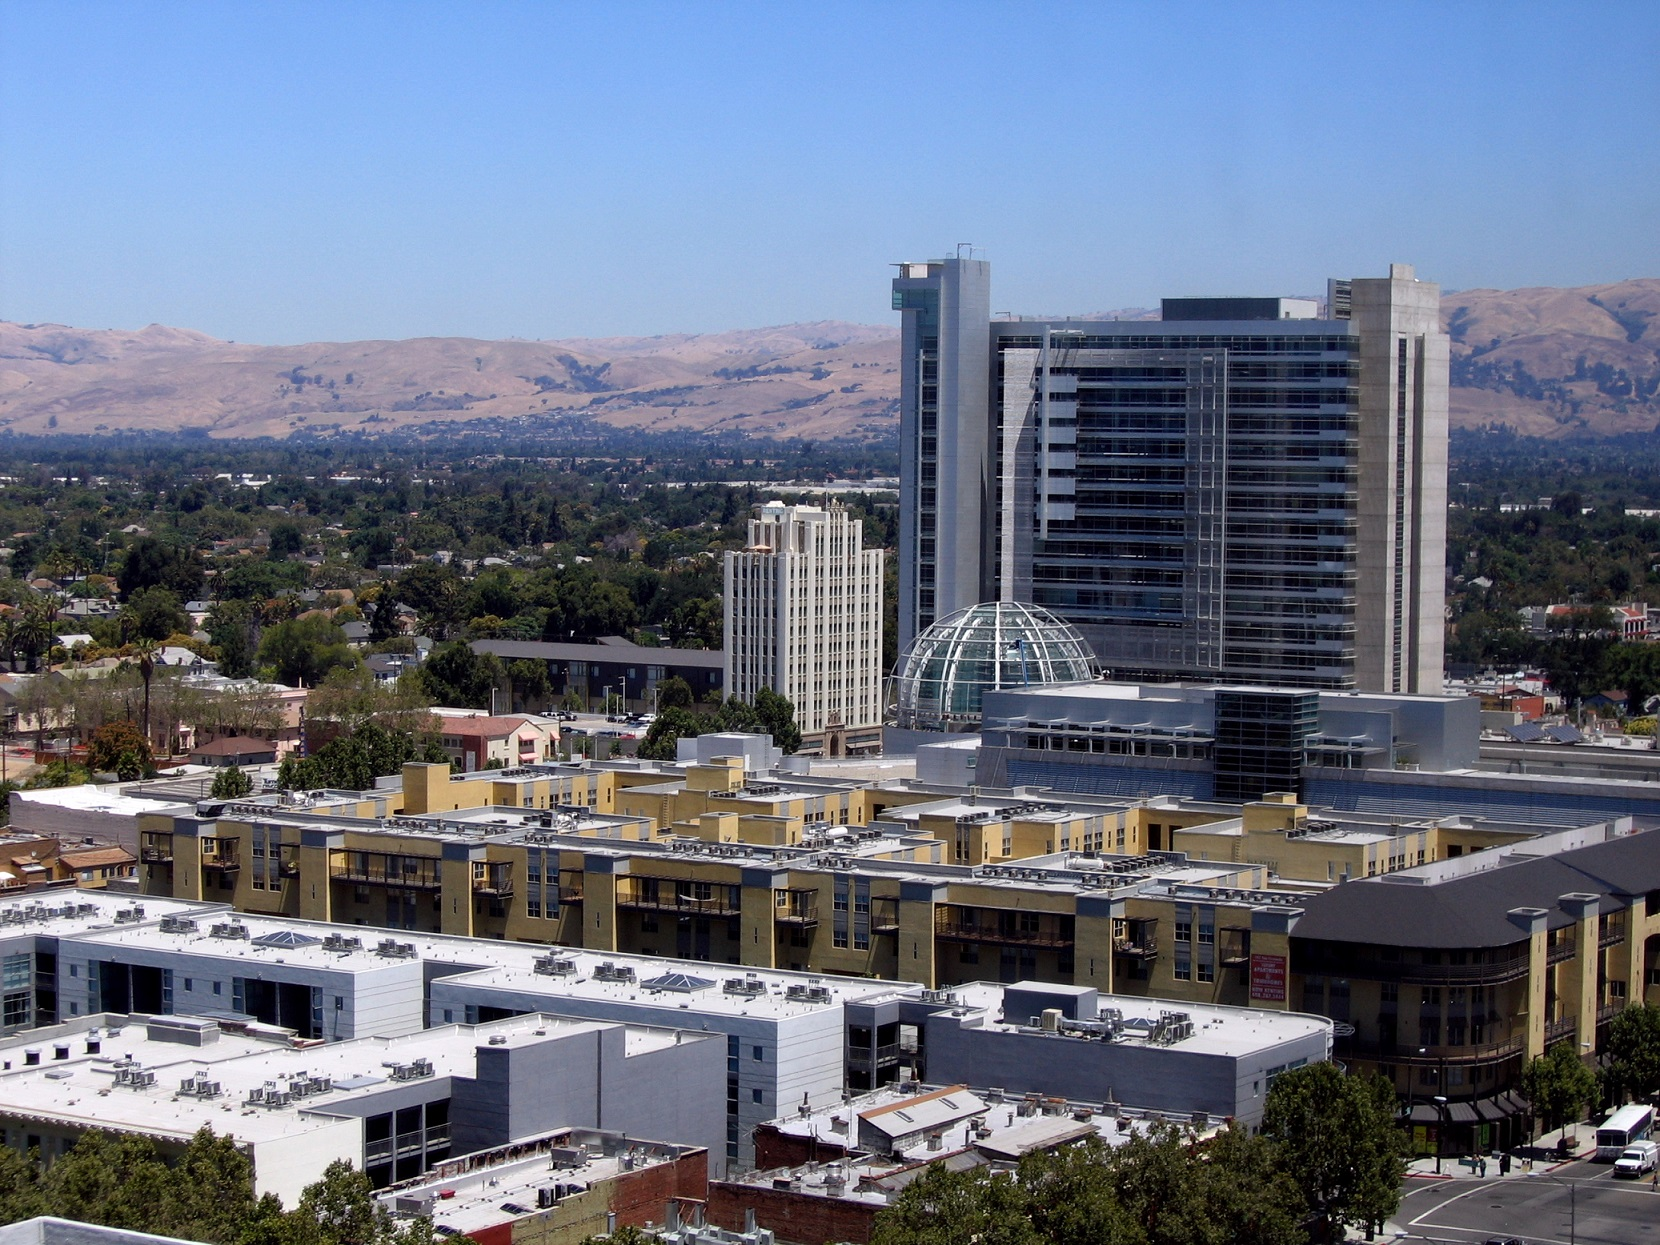 Th the largest city in california - Th The Largest City In California